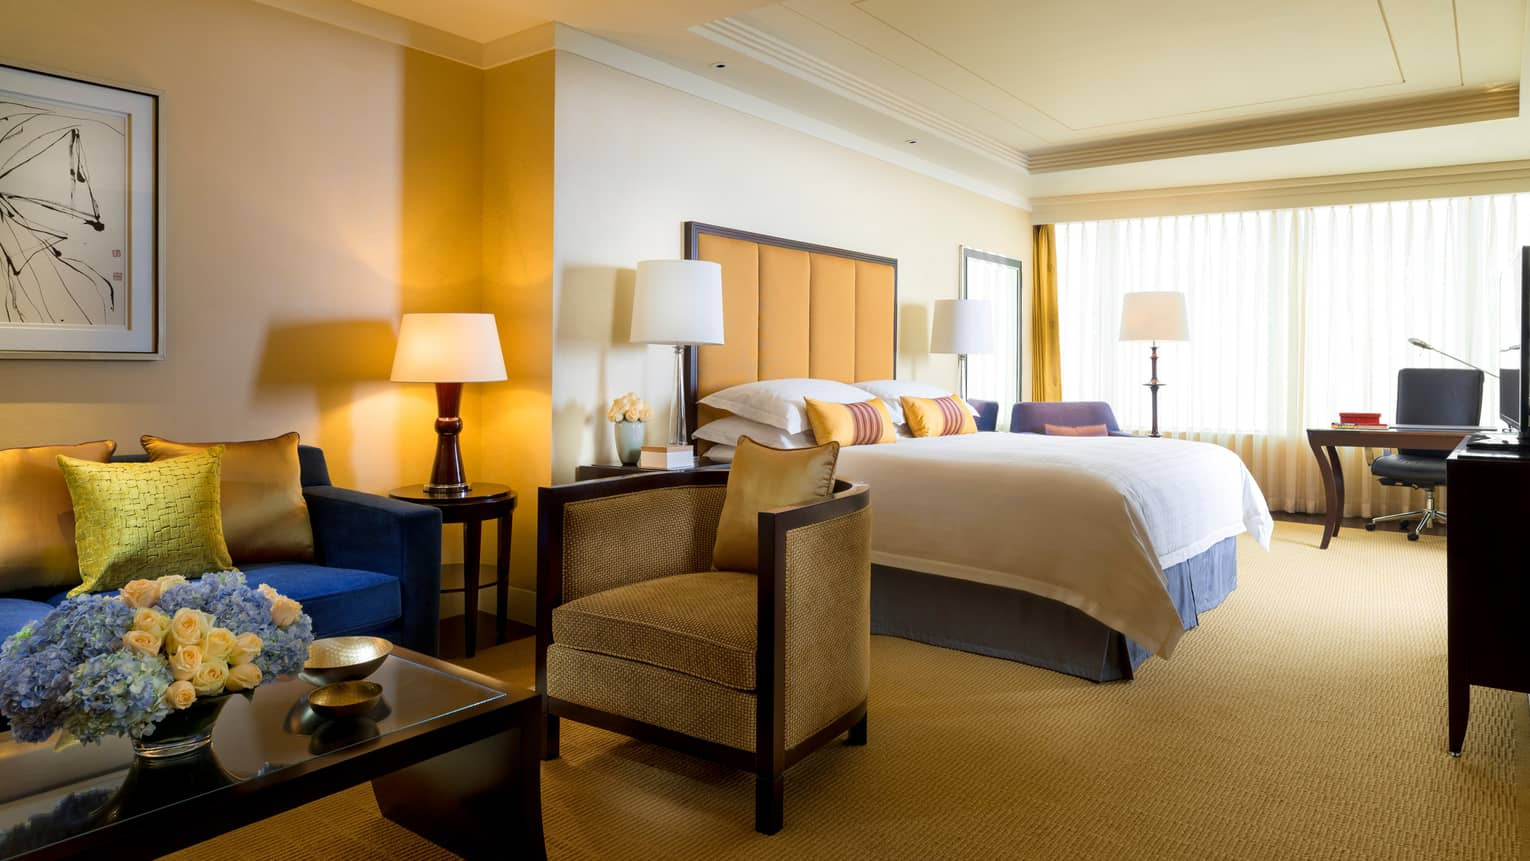 Four Seasons Room sitting area with coffee table, small armchairs beside hotel bed